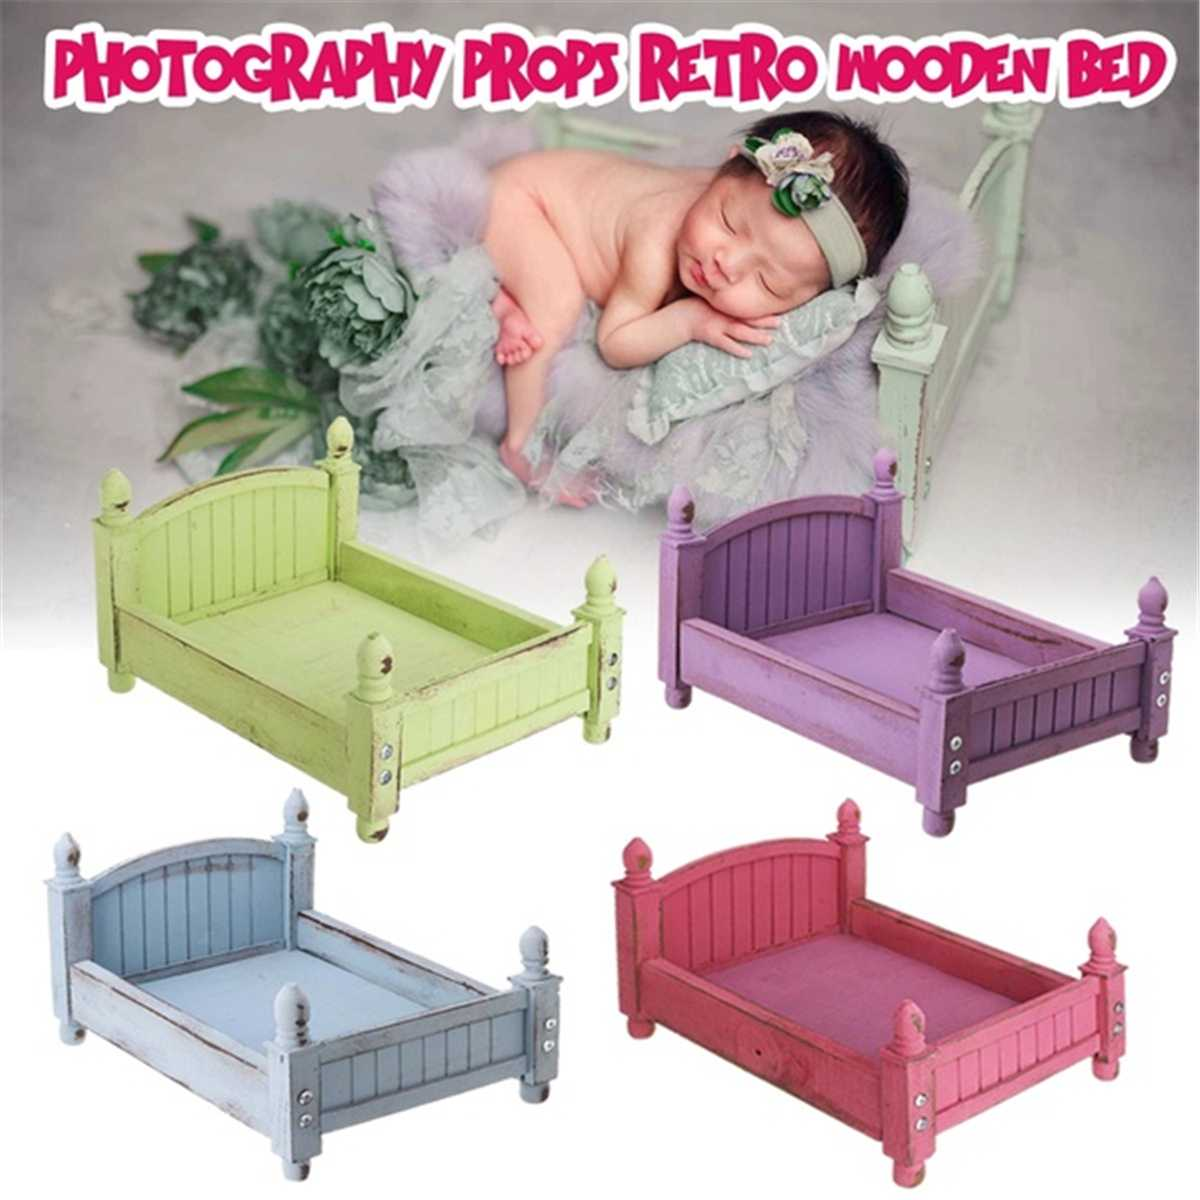 Newborn Photography Props Studio 4 Colors Optional  Wooden Bed Original Design Foldable Removable Bed Photo Shoot Posing